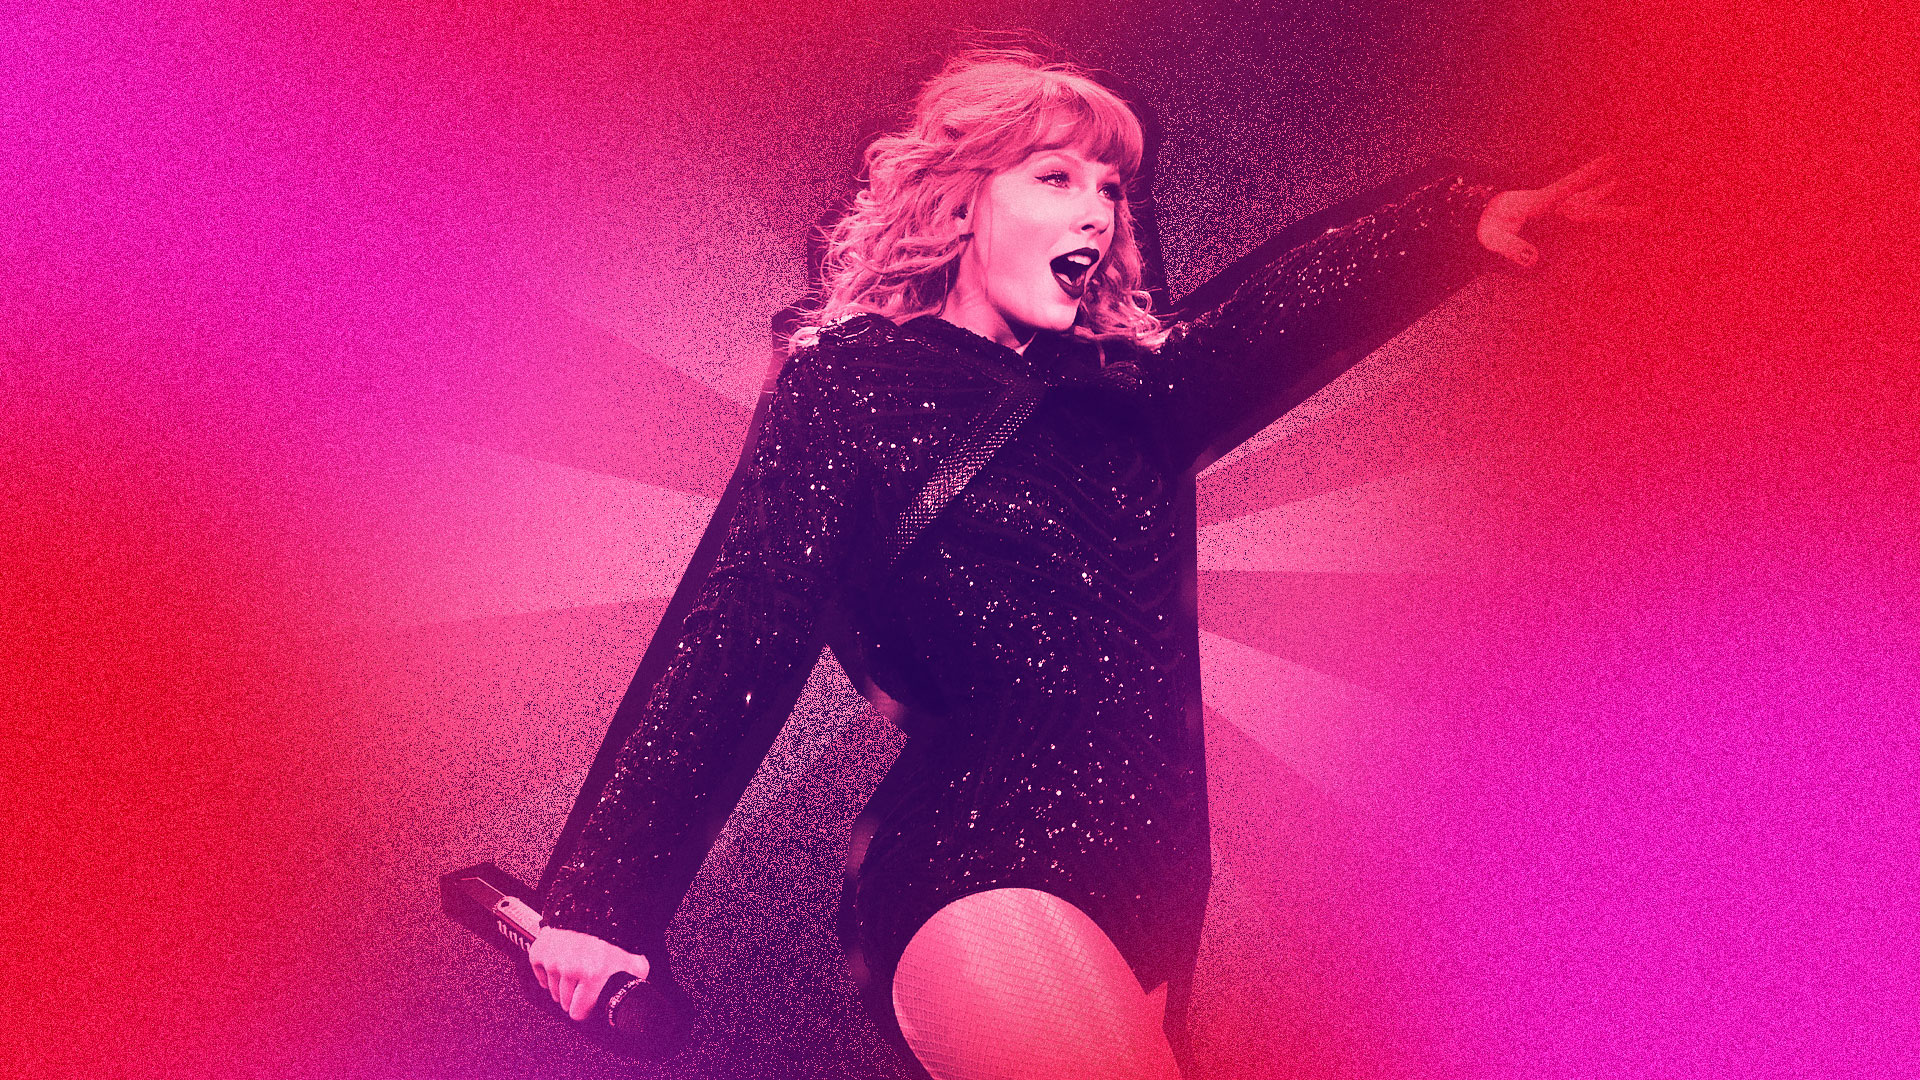 Best Taylor Swift Songs Ranked Love Story Lover More 1920x1080